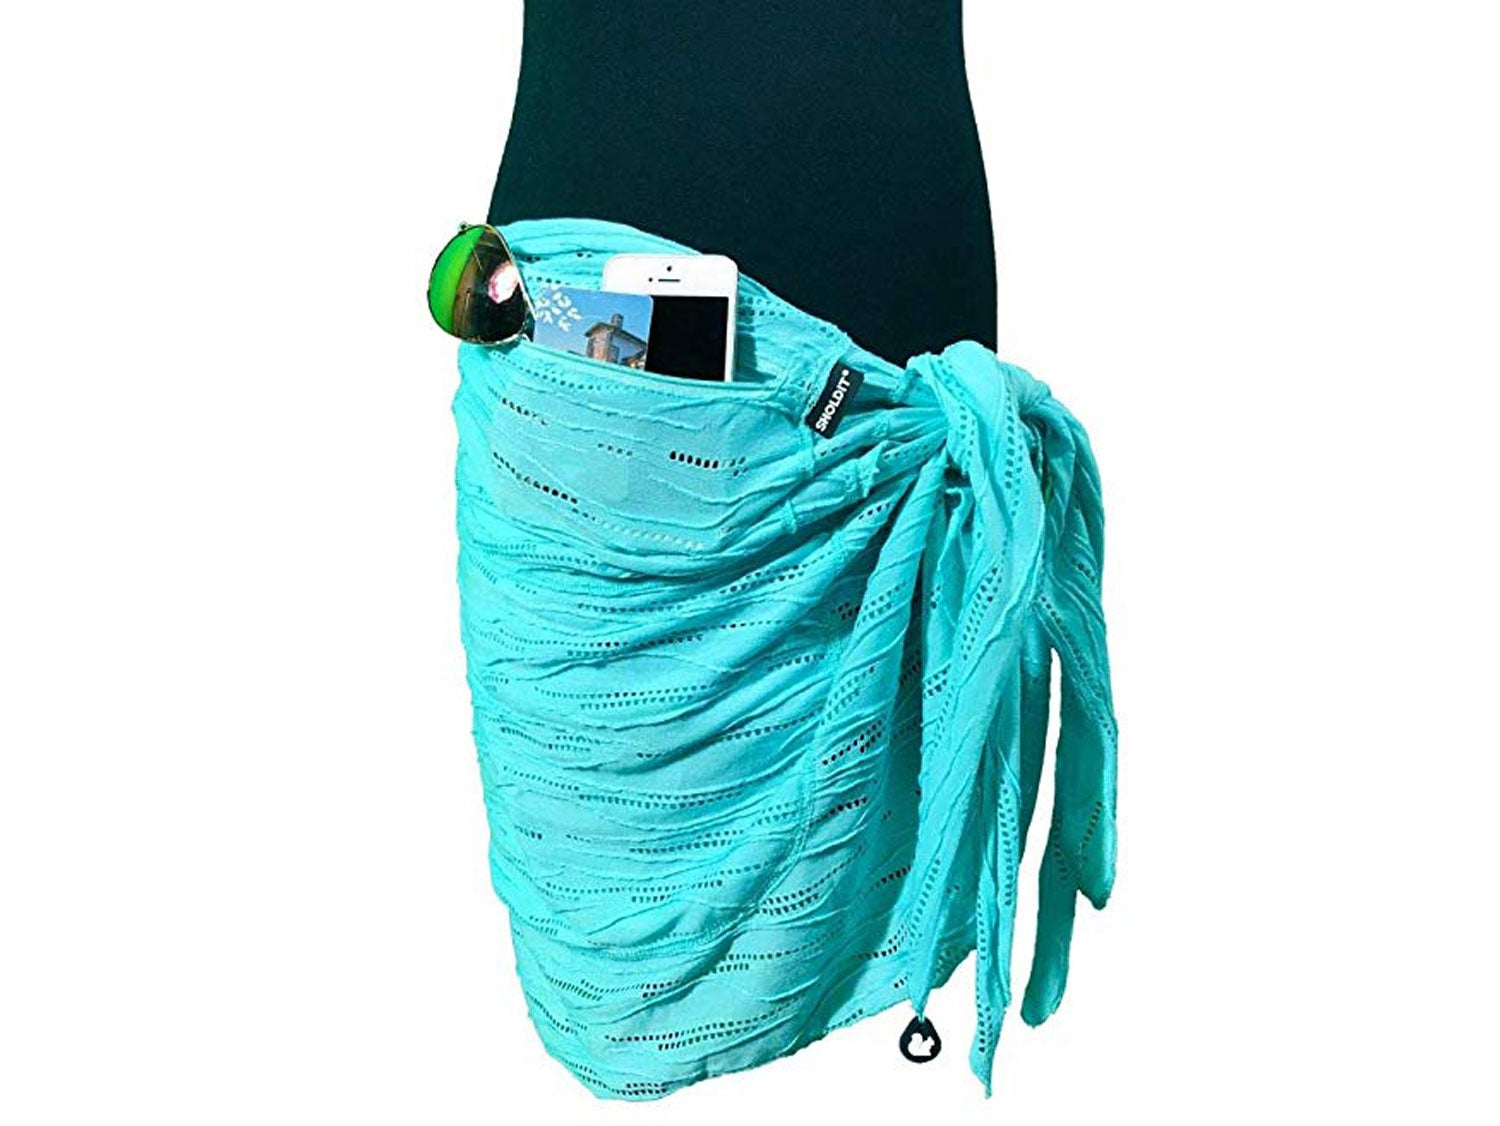 Sholdit Convertible Sarong with Pocket Swimsuit Cover Up